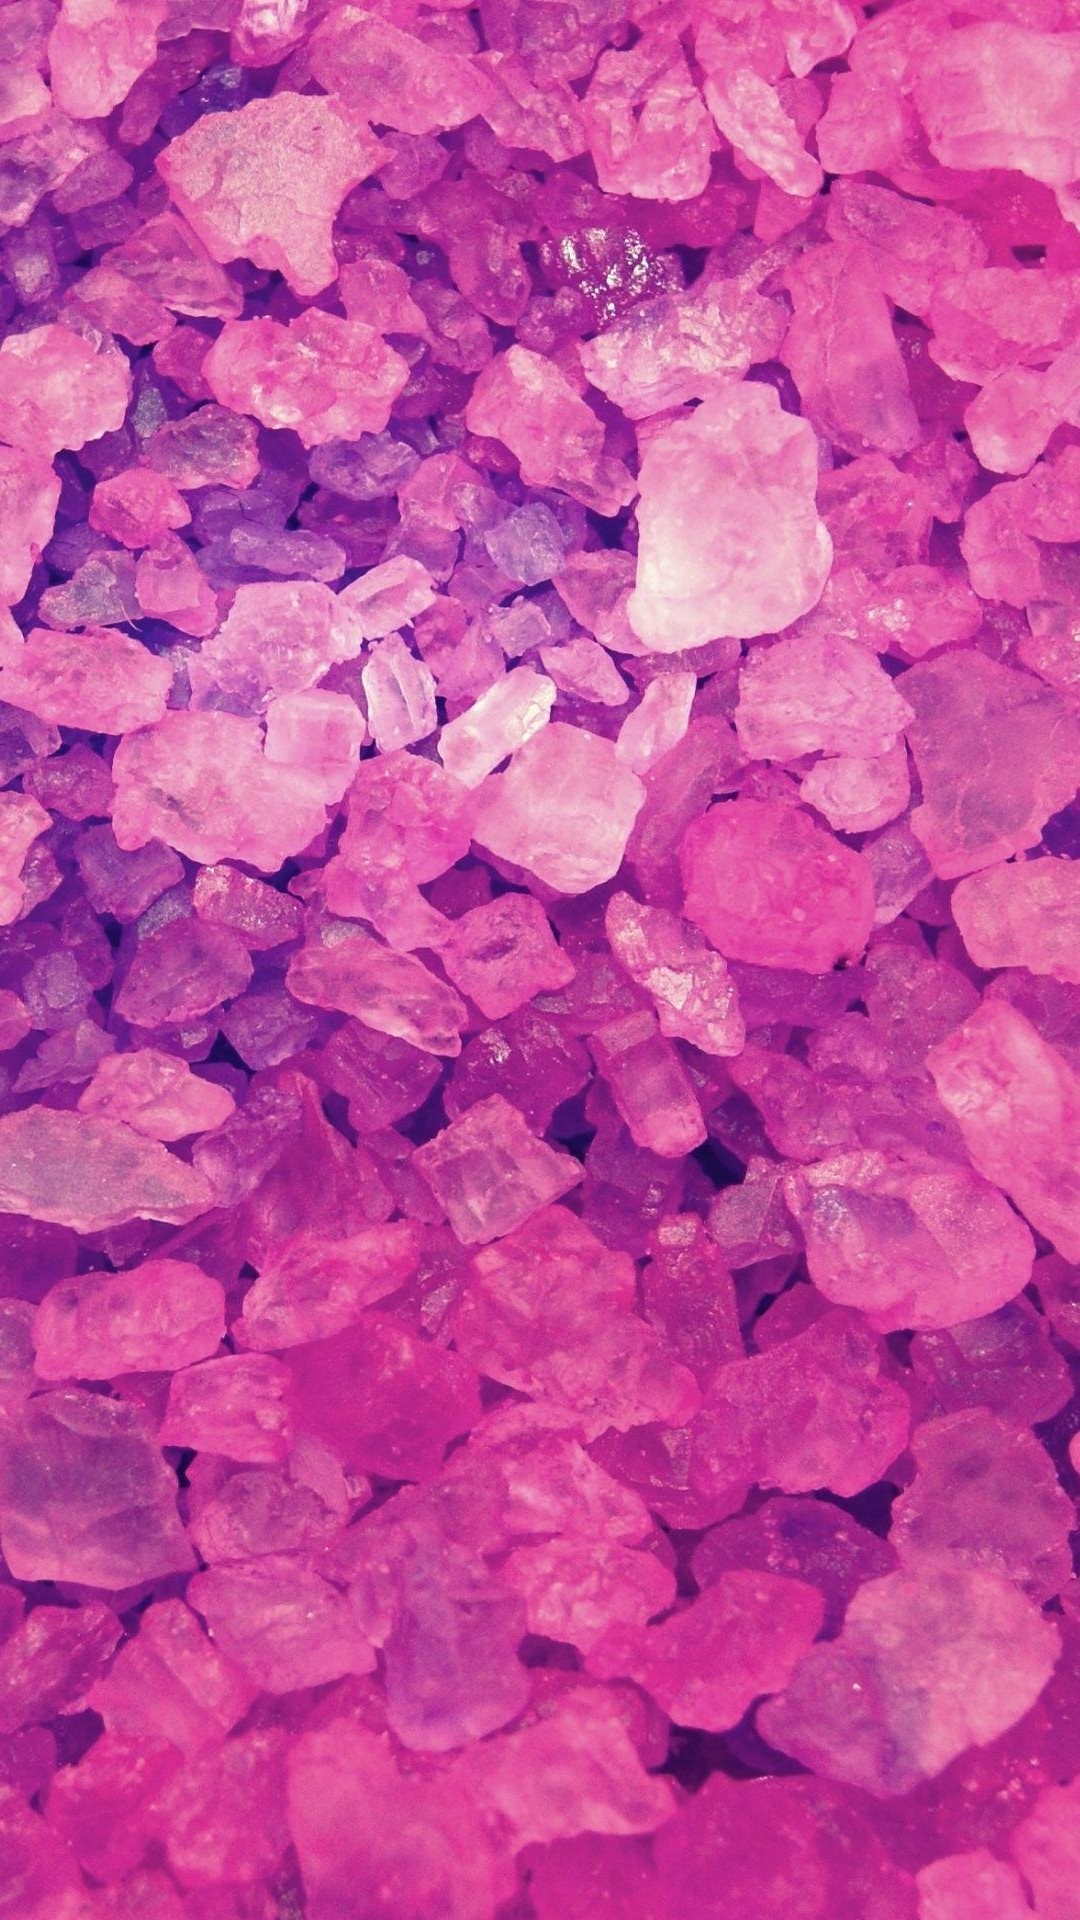 1080x1920 Pink Crystals Lockscreen iPhone 6 Plus HD Wallpaper ...